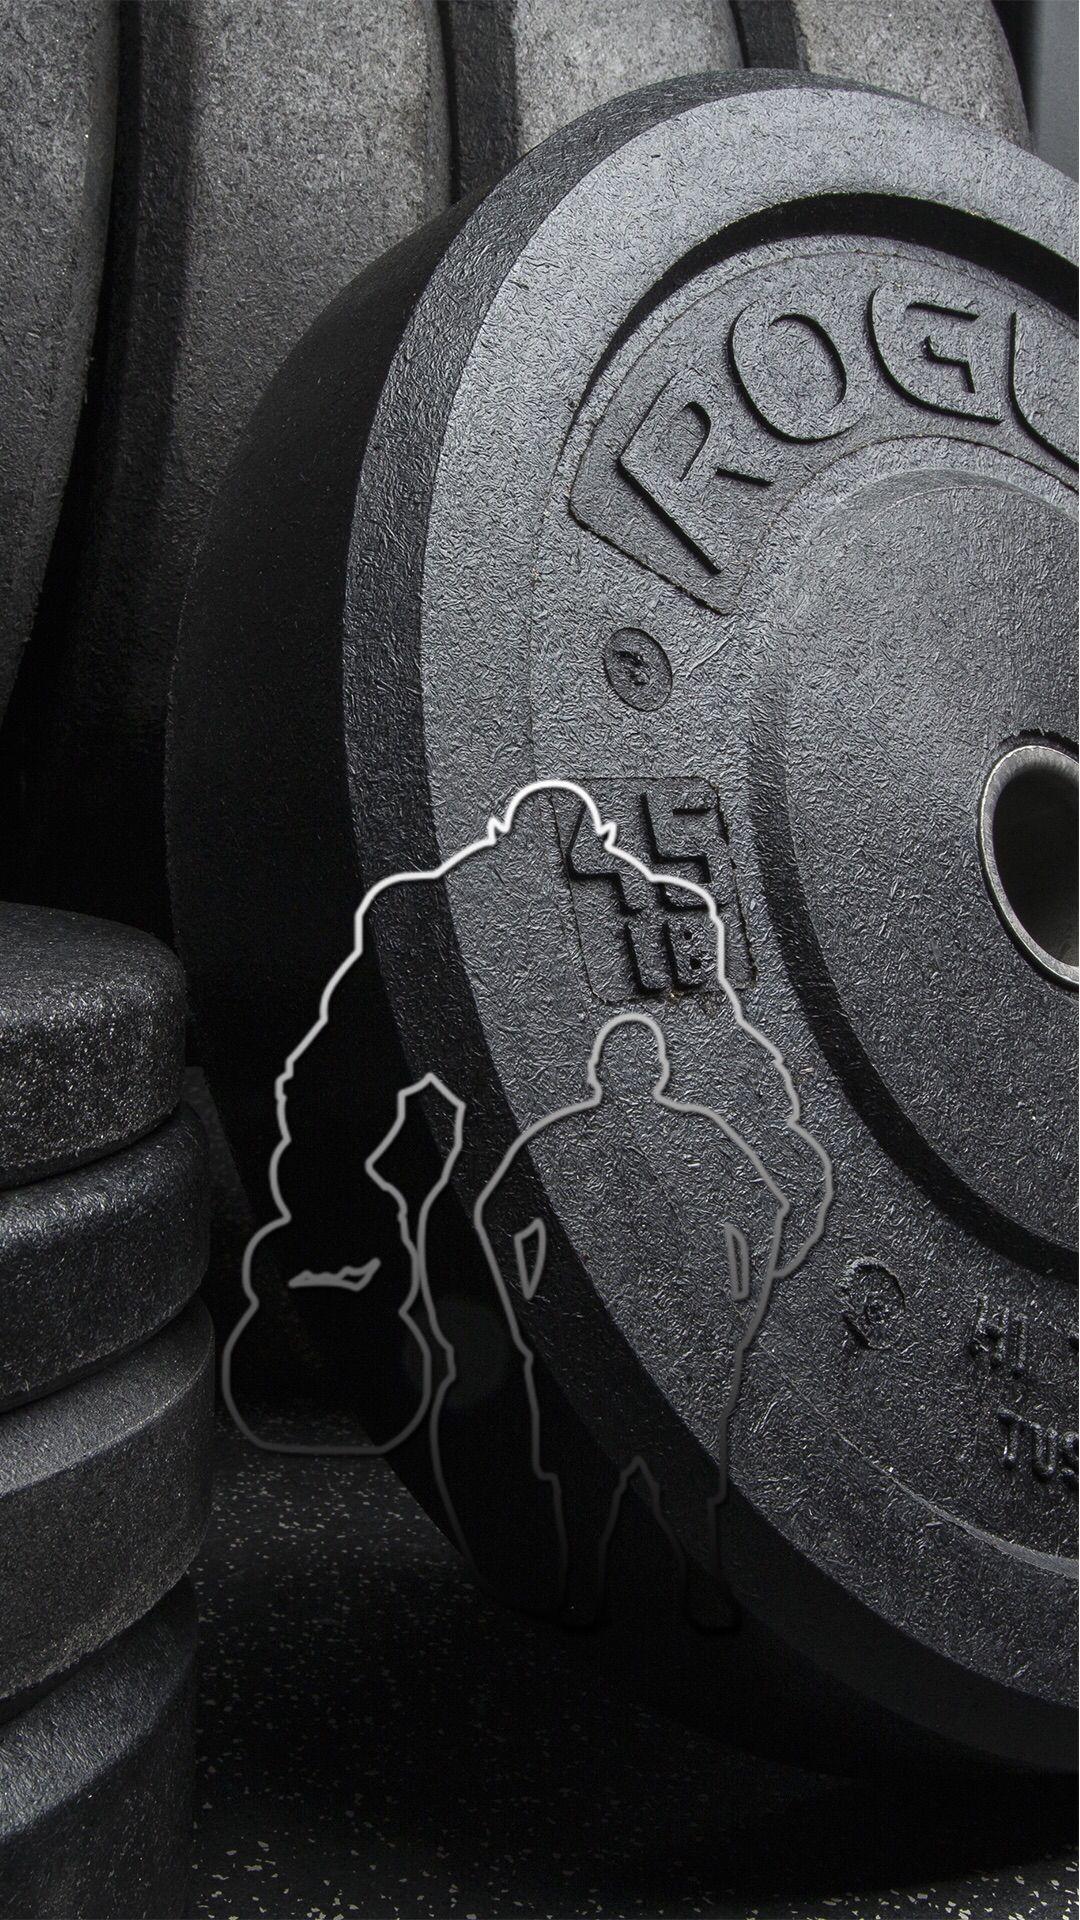 1080x1920 4k Background Dumbell - Iphone 6 Gym Wallpaper Fat To Beast ...